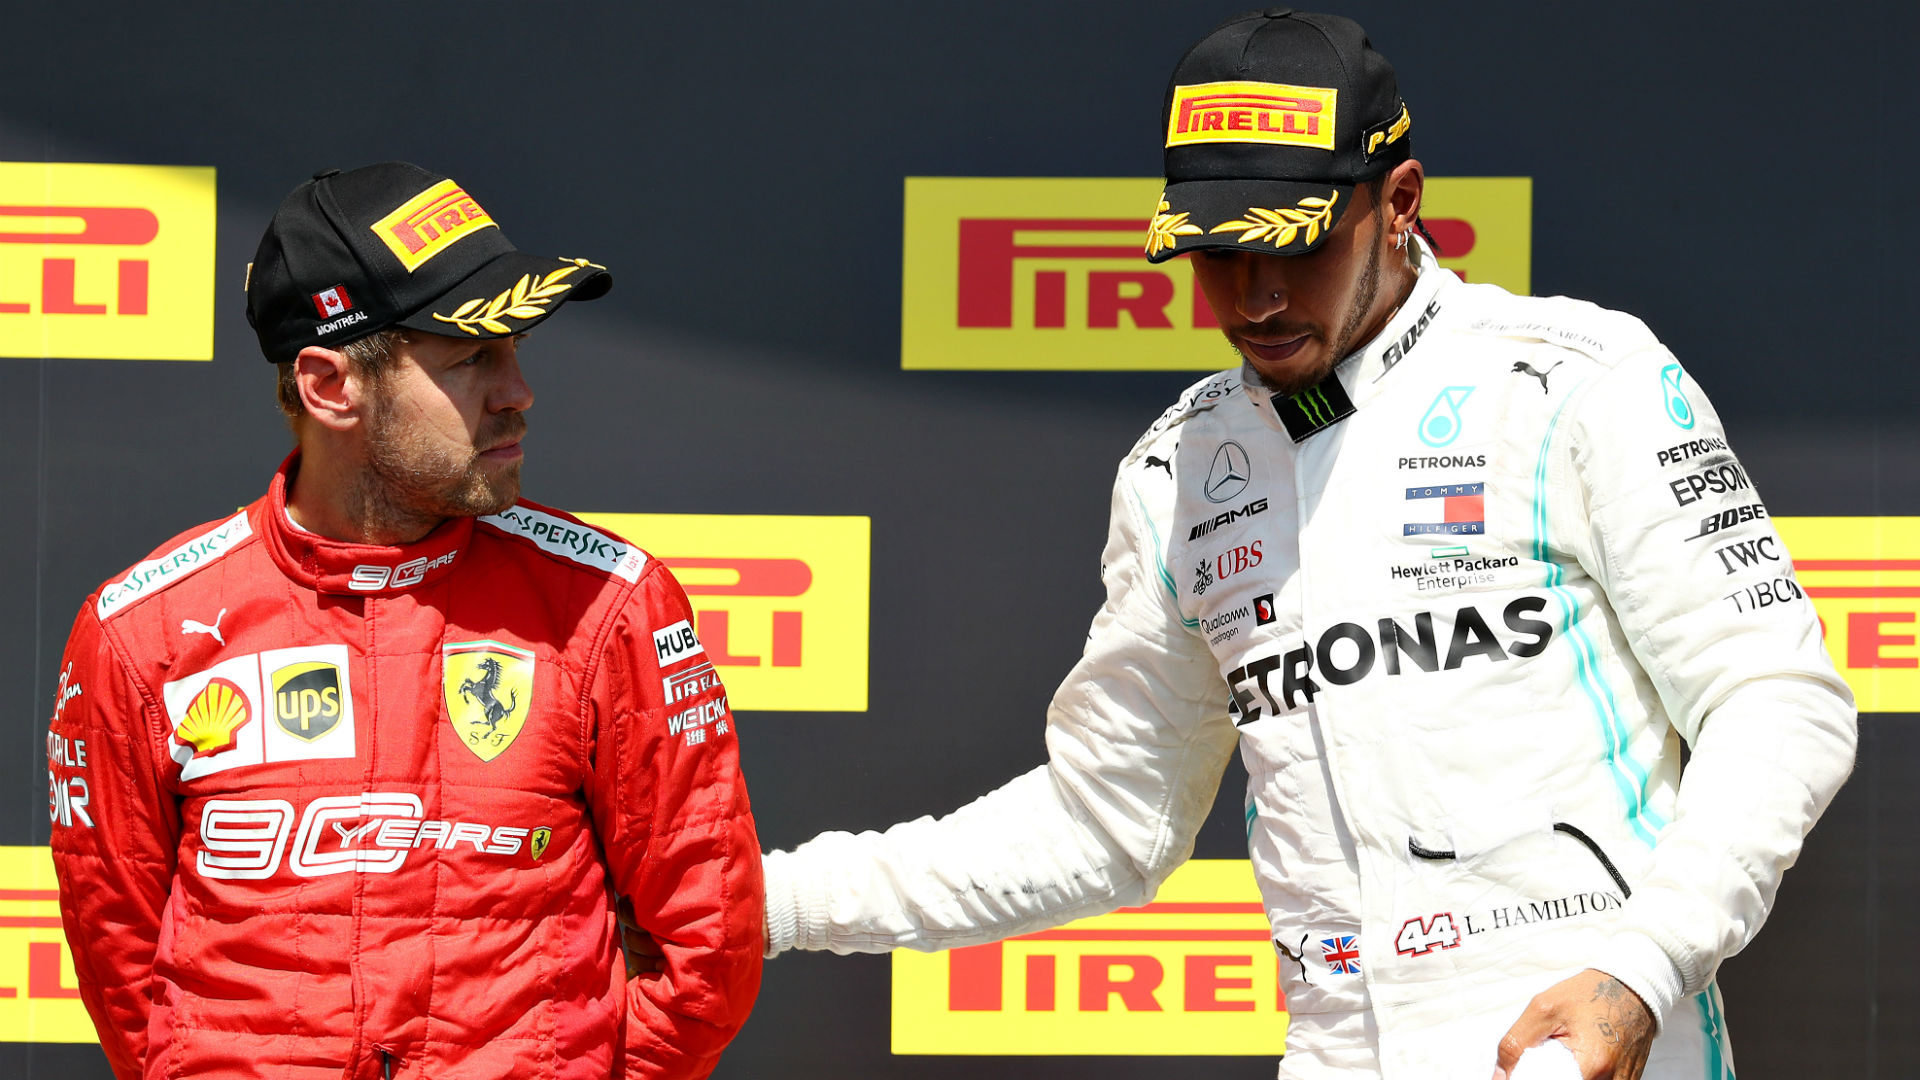 Mercedes march on, Ferrari fall short and Renault flop - F1 mid-season review